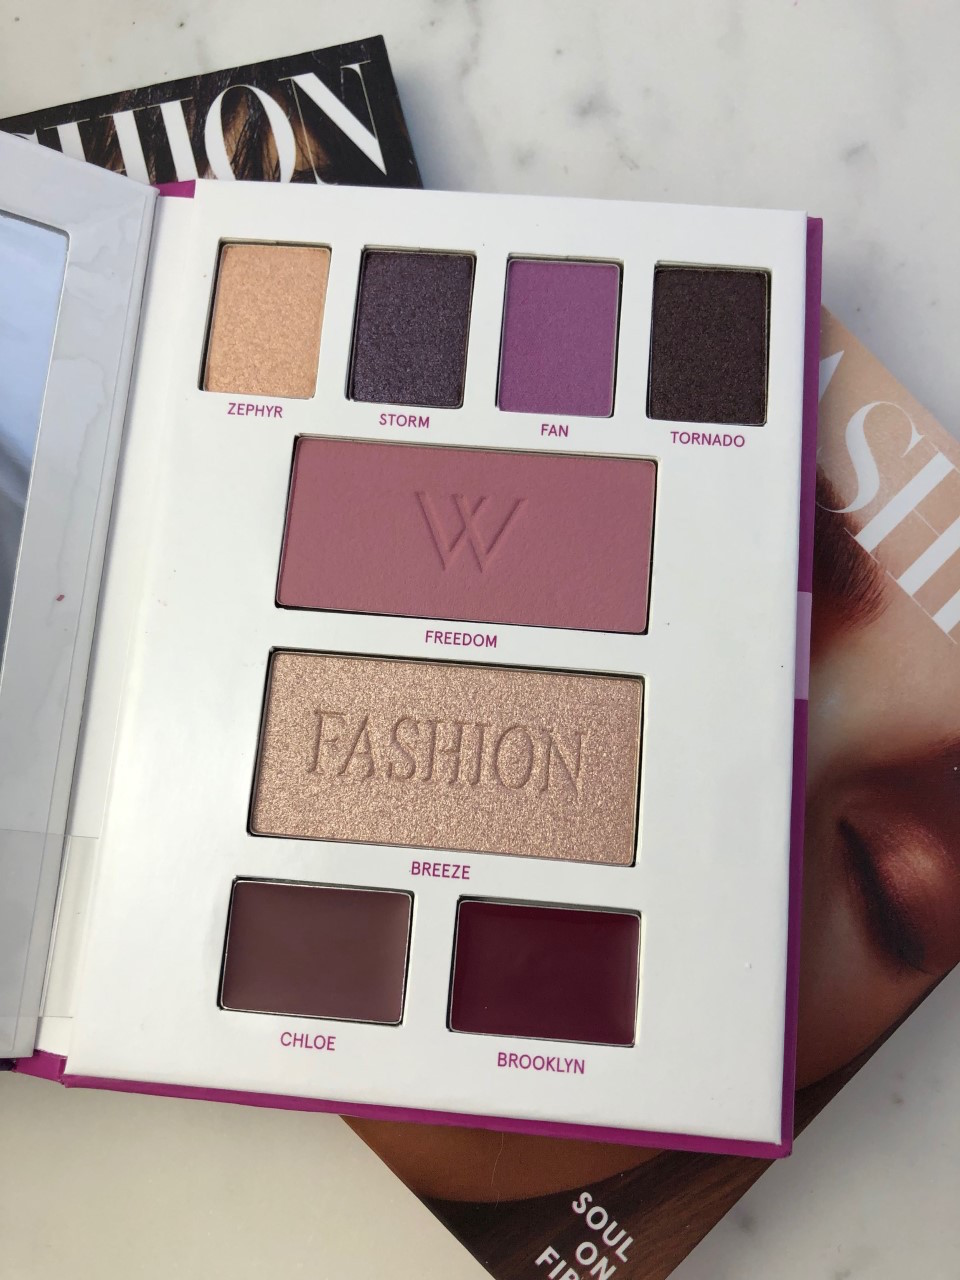 Lise Watier x Fashion Collection: A quick review